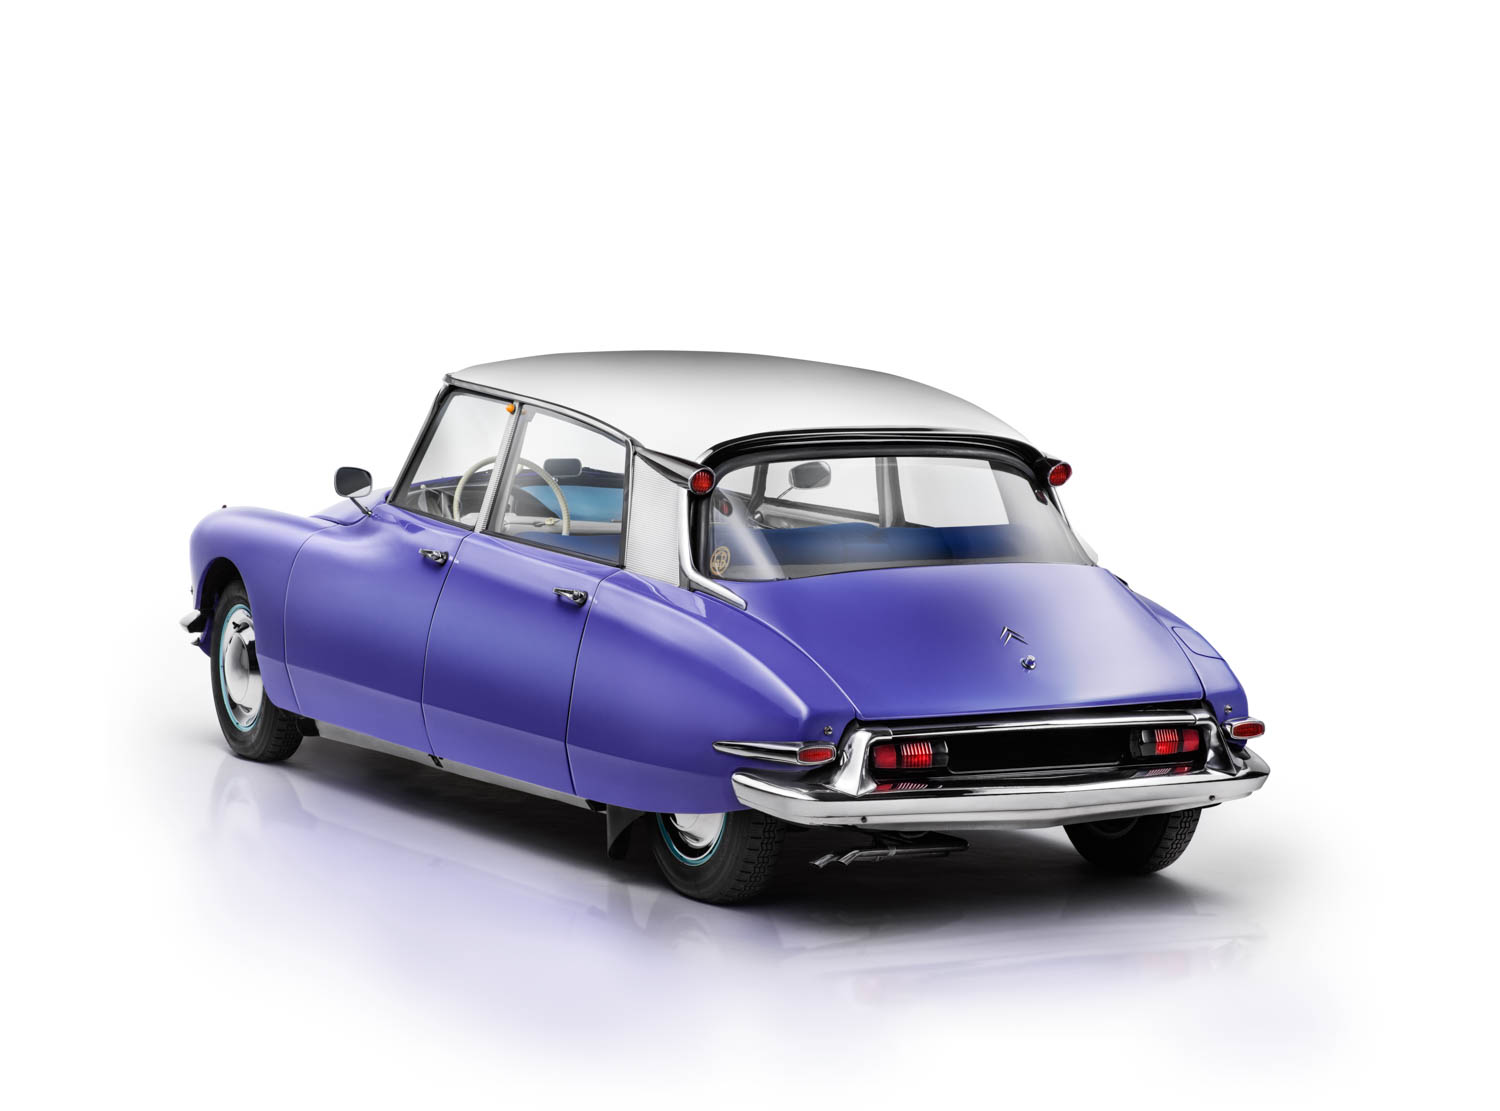 C'est magnifique! Owner John Behrens of Tucson purchased this 1959 DS19 because of his fond memories of them growing up in France. The color, Bleu Delphinium, was his sister's favorite and was only available in '59. It is the rarest DS color, he says.